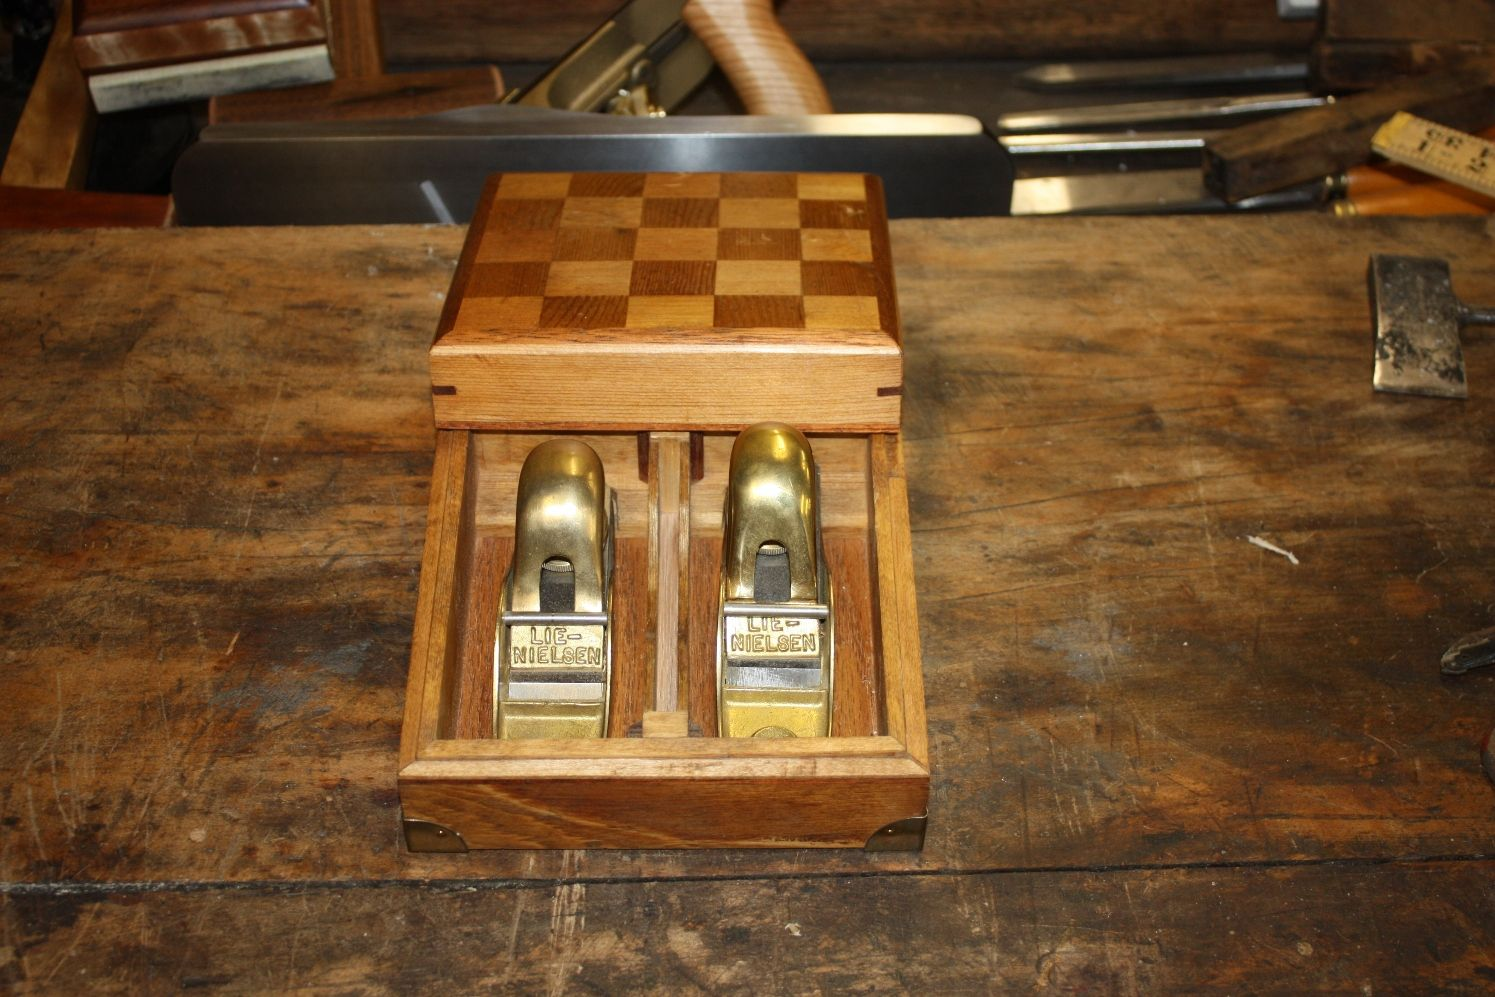 Lie Nielsen No 102 103 Block Plane Set In User Made Box How To Make Box Woodworking Tools Chess Board